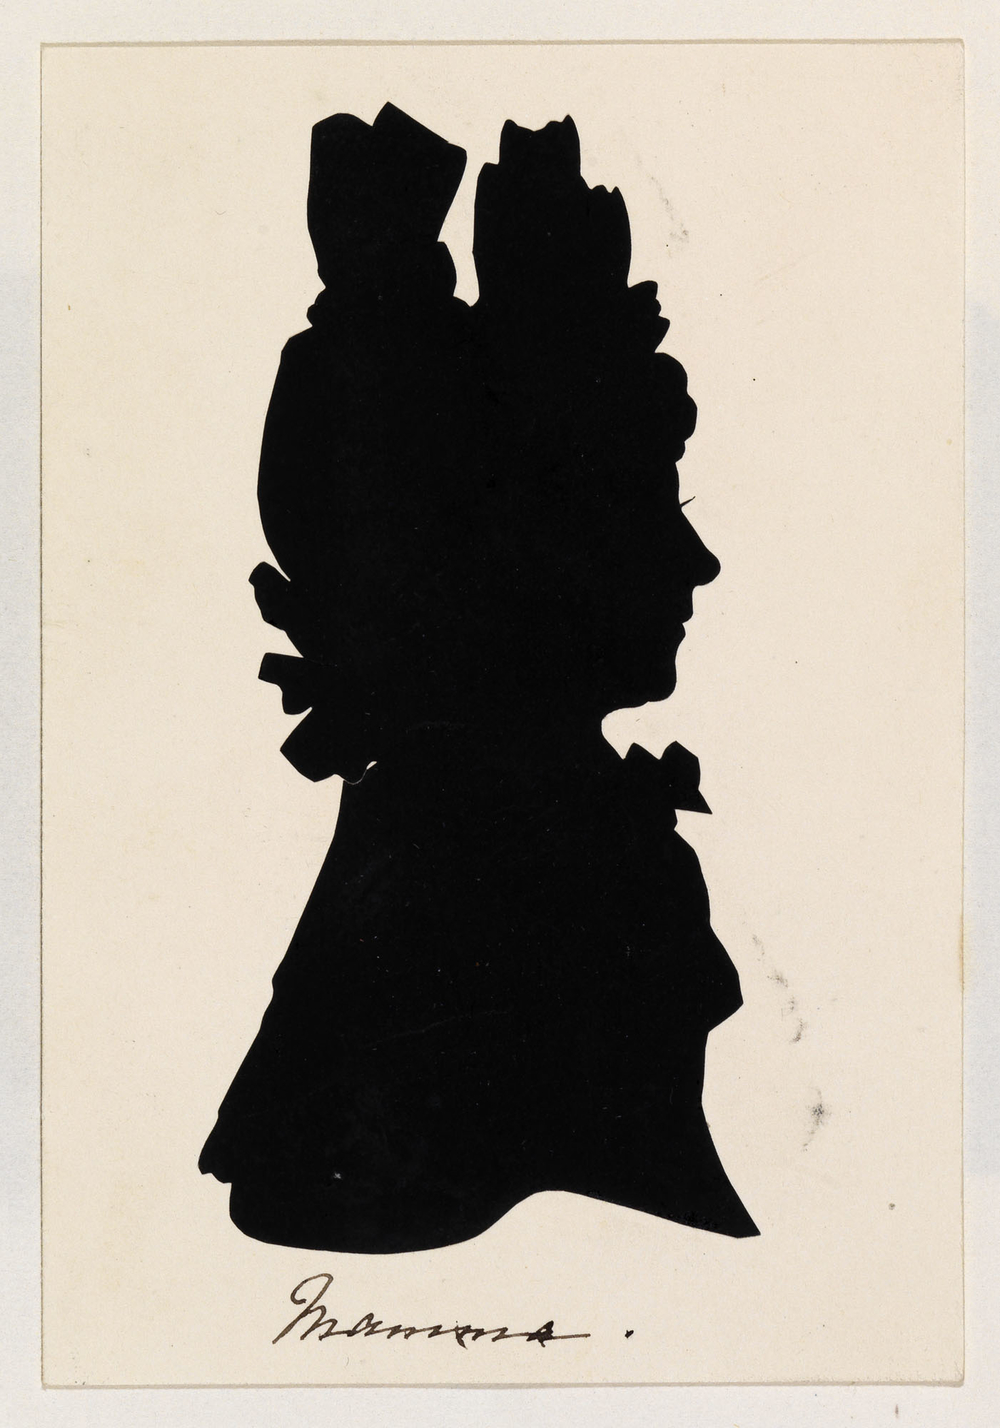 Silhouette of Victoria, Duchess of Kent